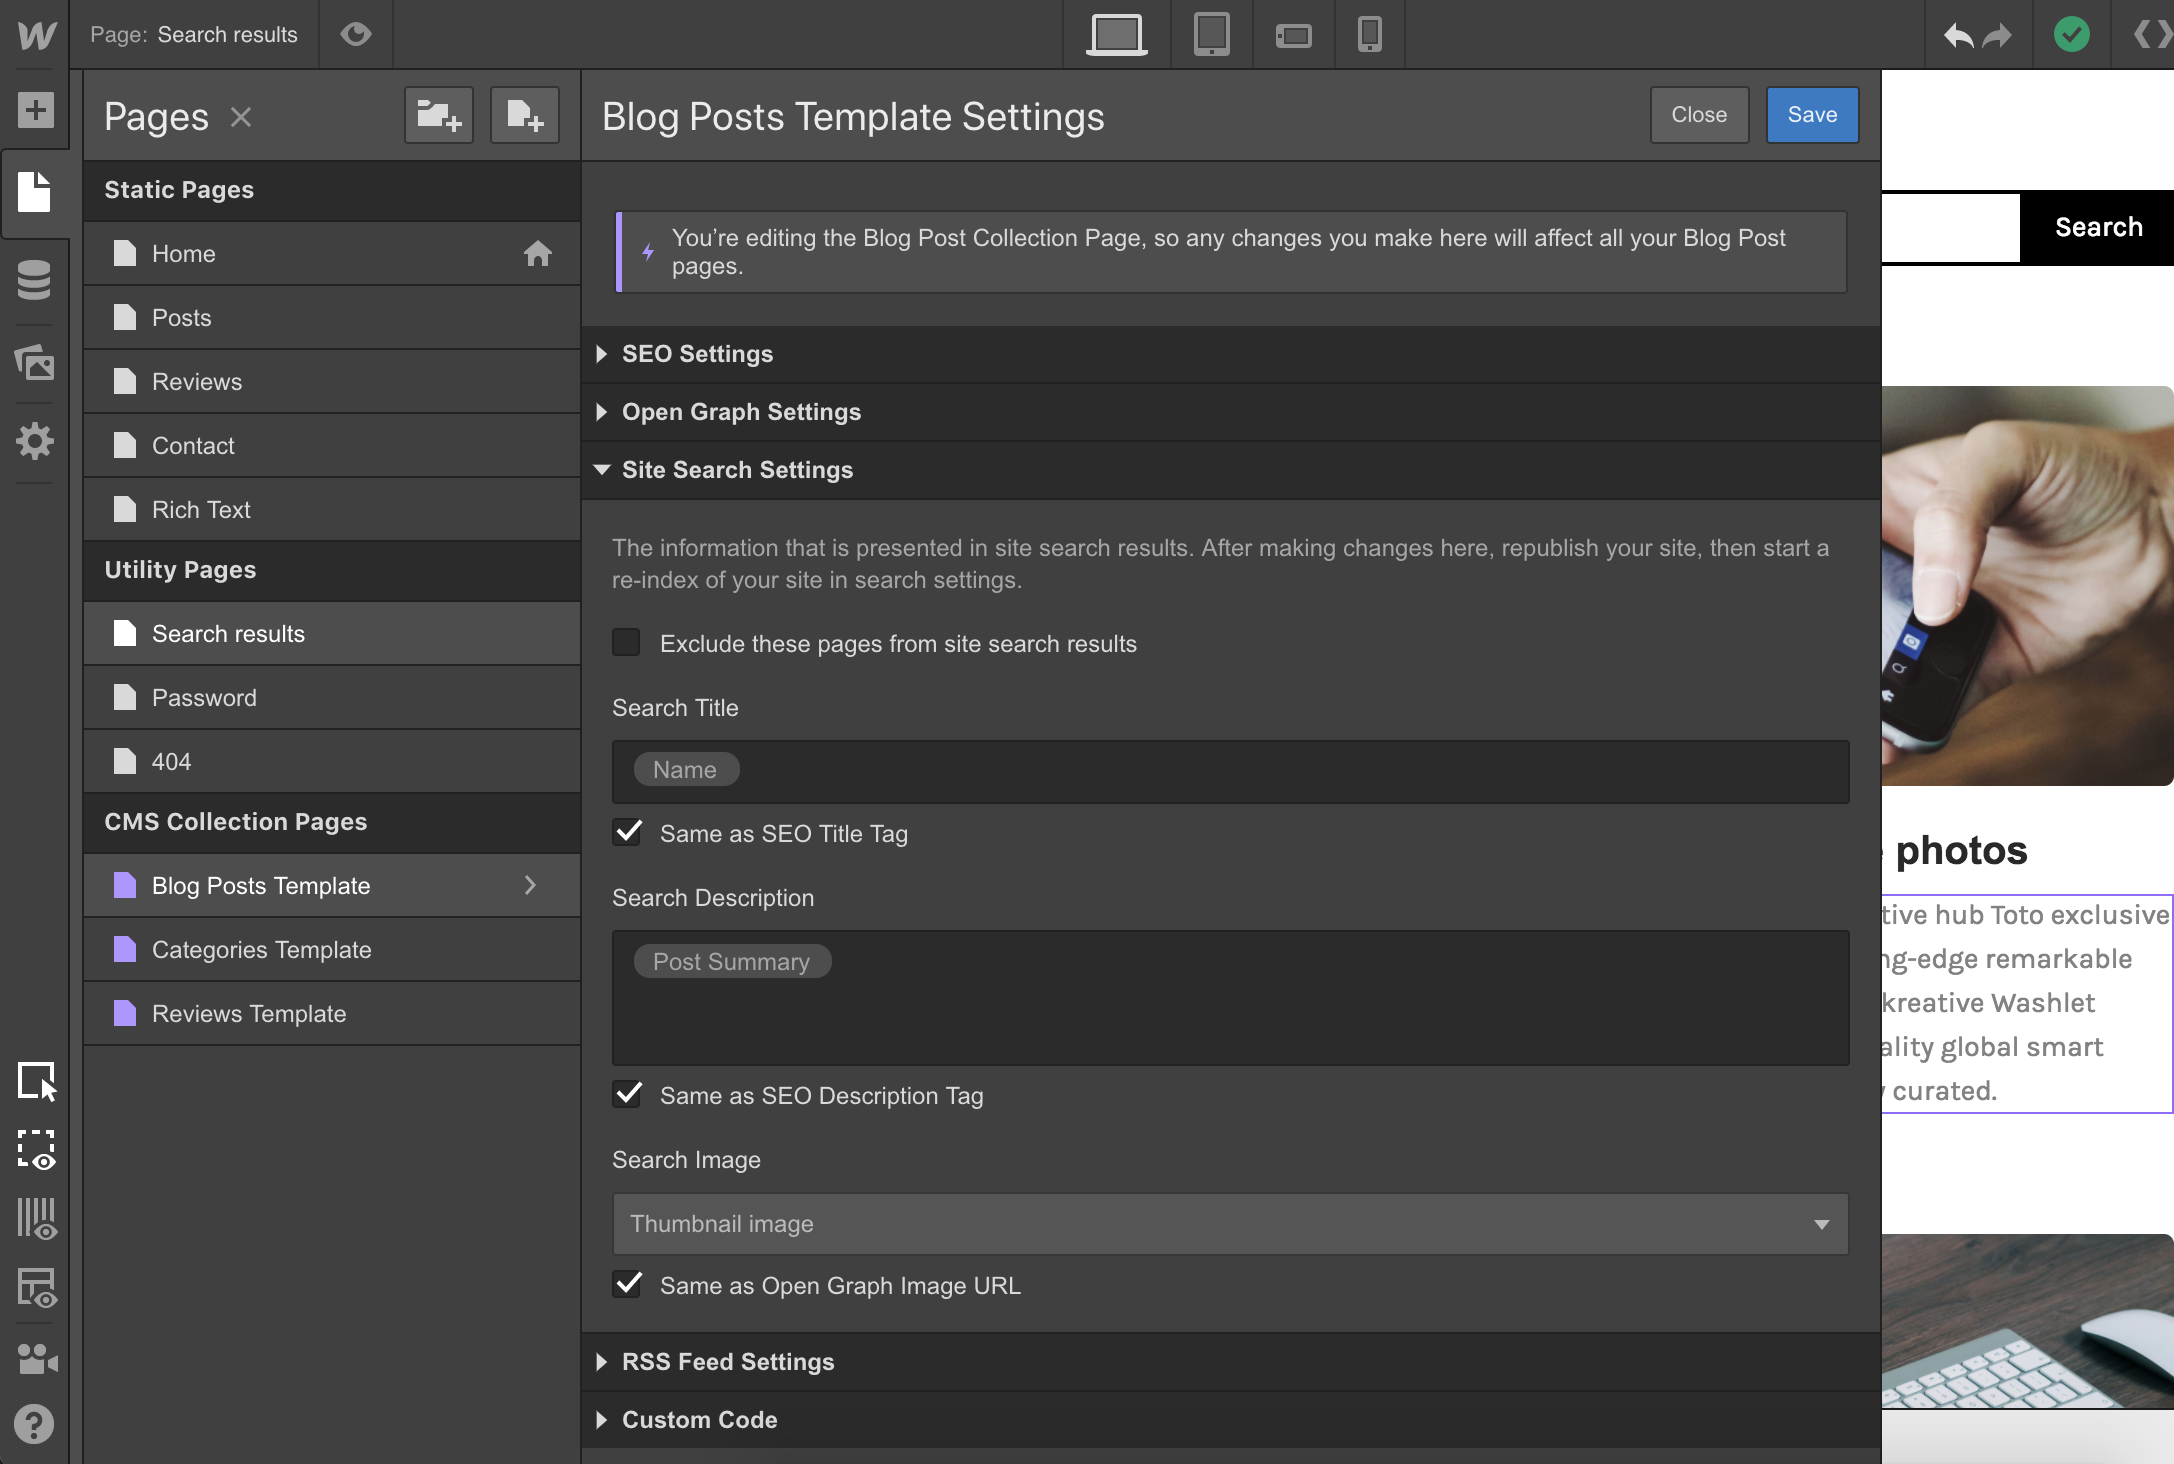 Control what content displays in search results under your Page Settings.